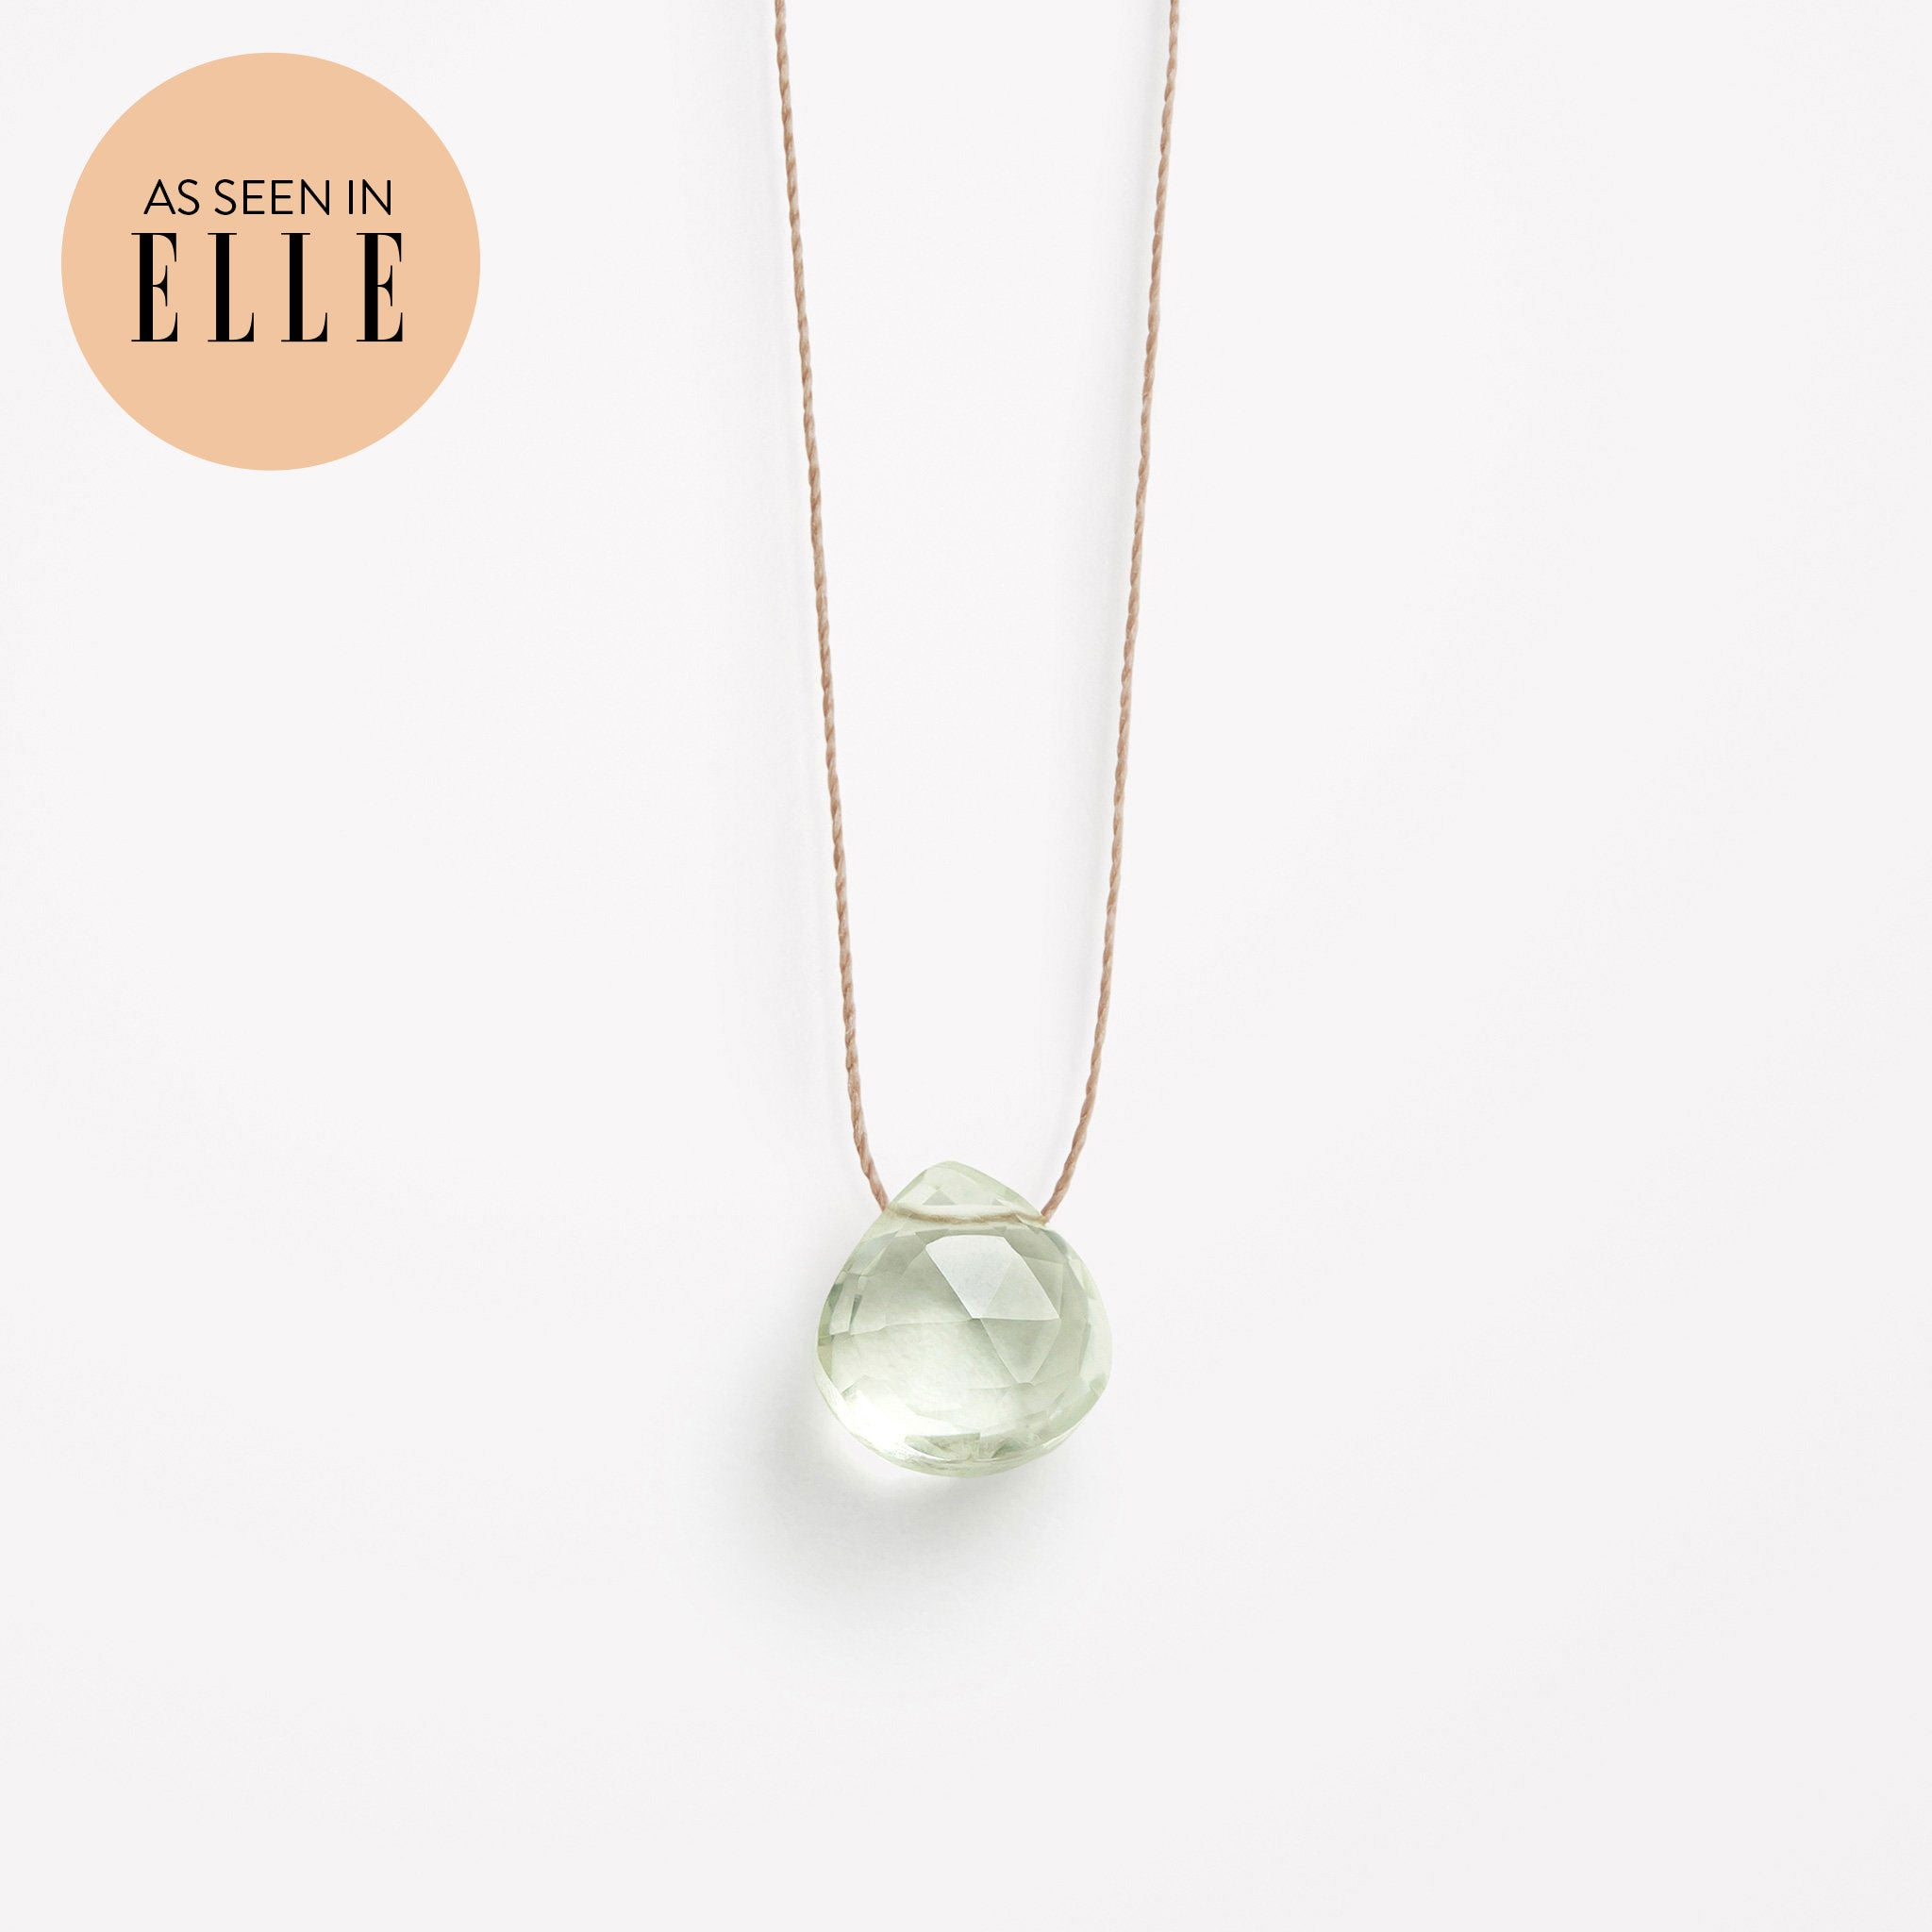 Wanderlust Life Ethically Handmade jewellery made in the UK. Minimalist gold and fine cord jewellery. february birthstone, mint green amethyst fine cord necklace